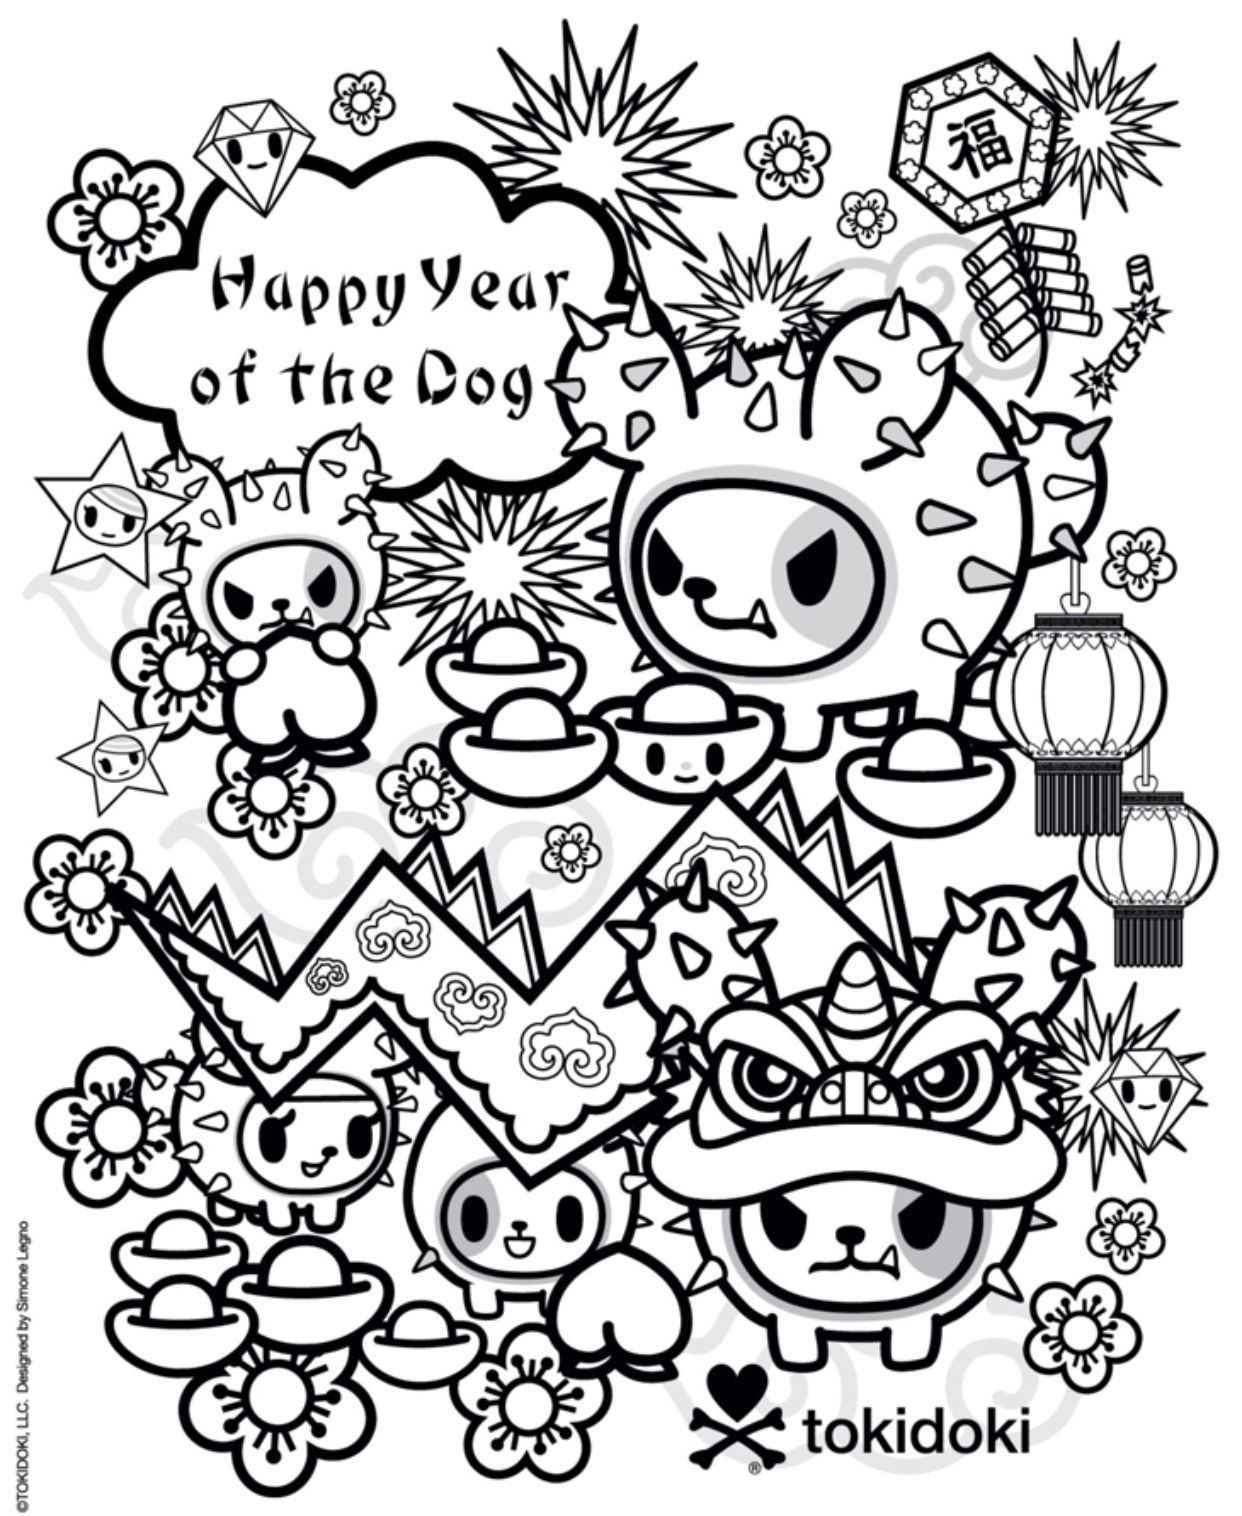 Images Of Funny Tokidoki Ink Character Sc Candy Coloring Pages Cute Coloring Pages Unicorn Coloring Pages